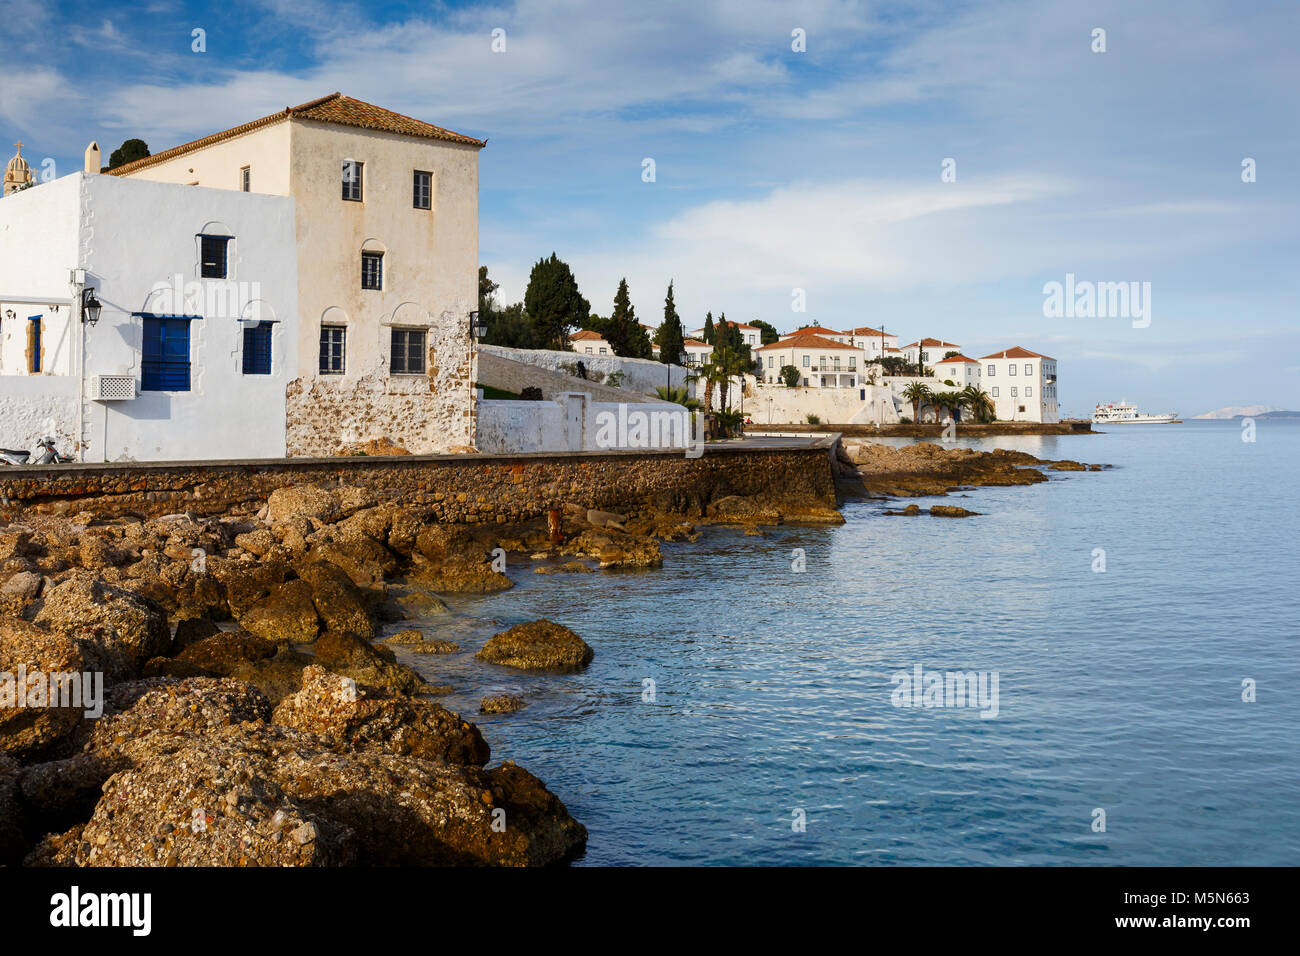 L'architecture traditionnelle en Spetses, Grèce mer. Photo Stock